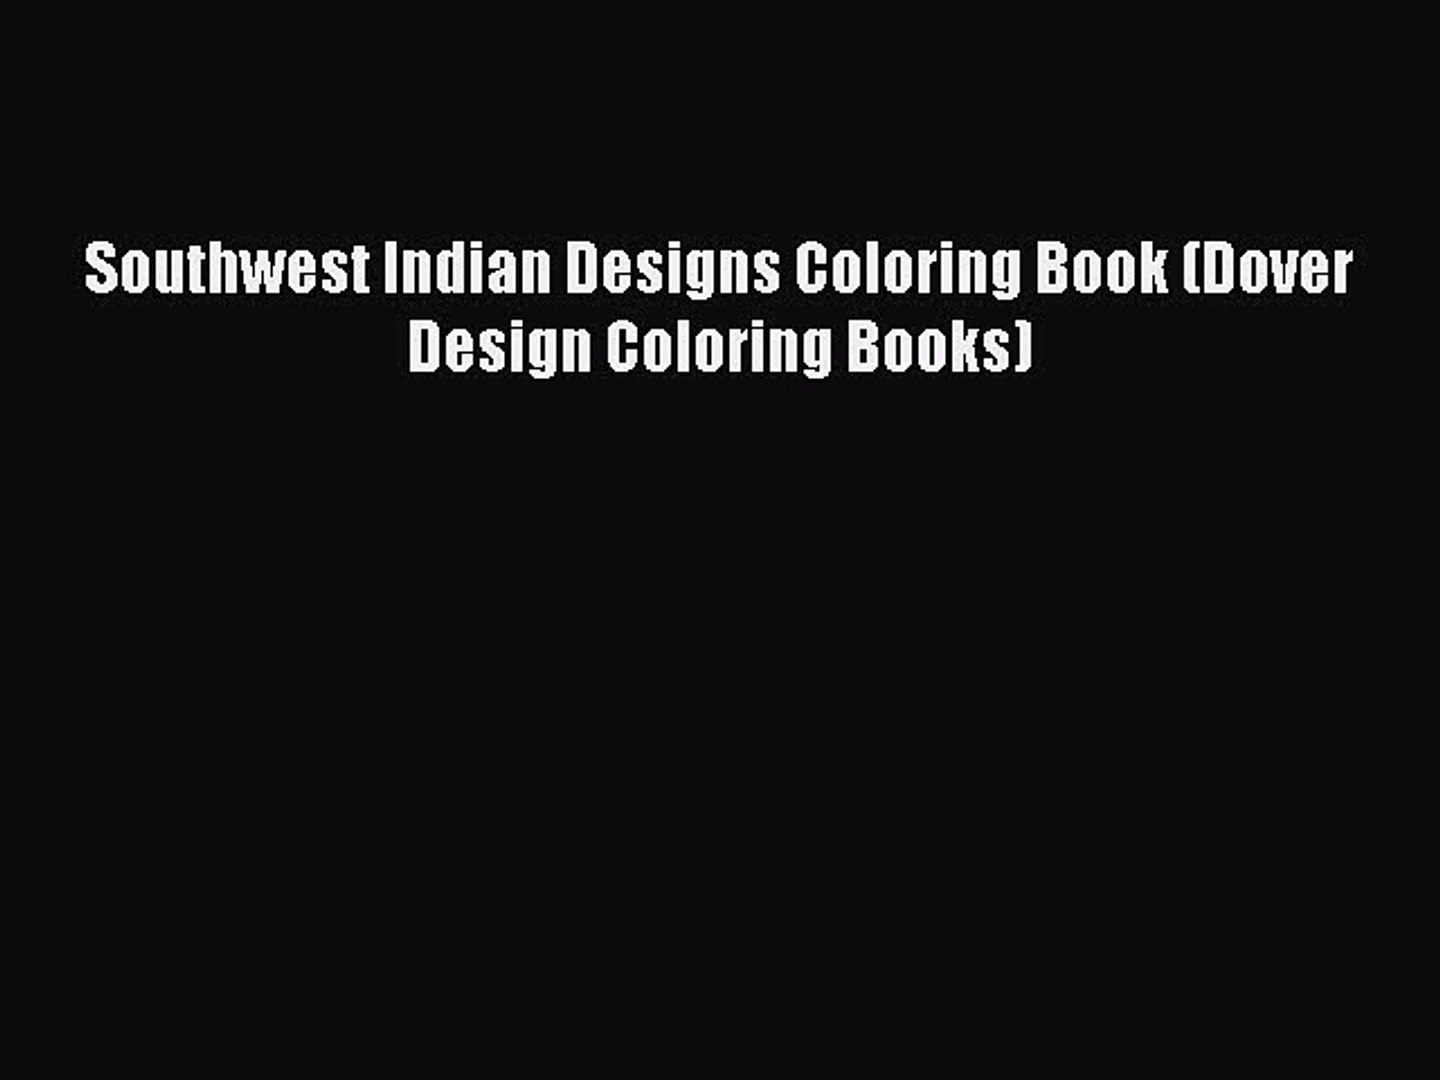 Southwest Indian Designs Coloring Book (Dover Design Coloring Books) Free  Download Book